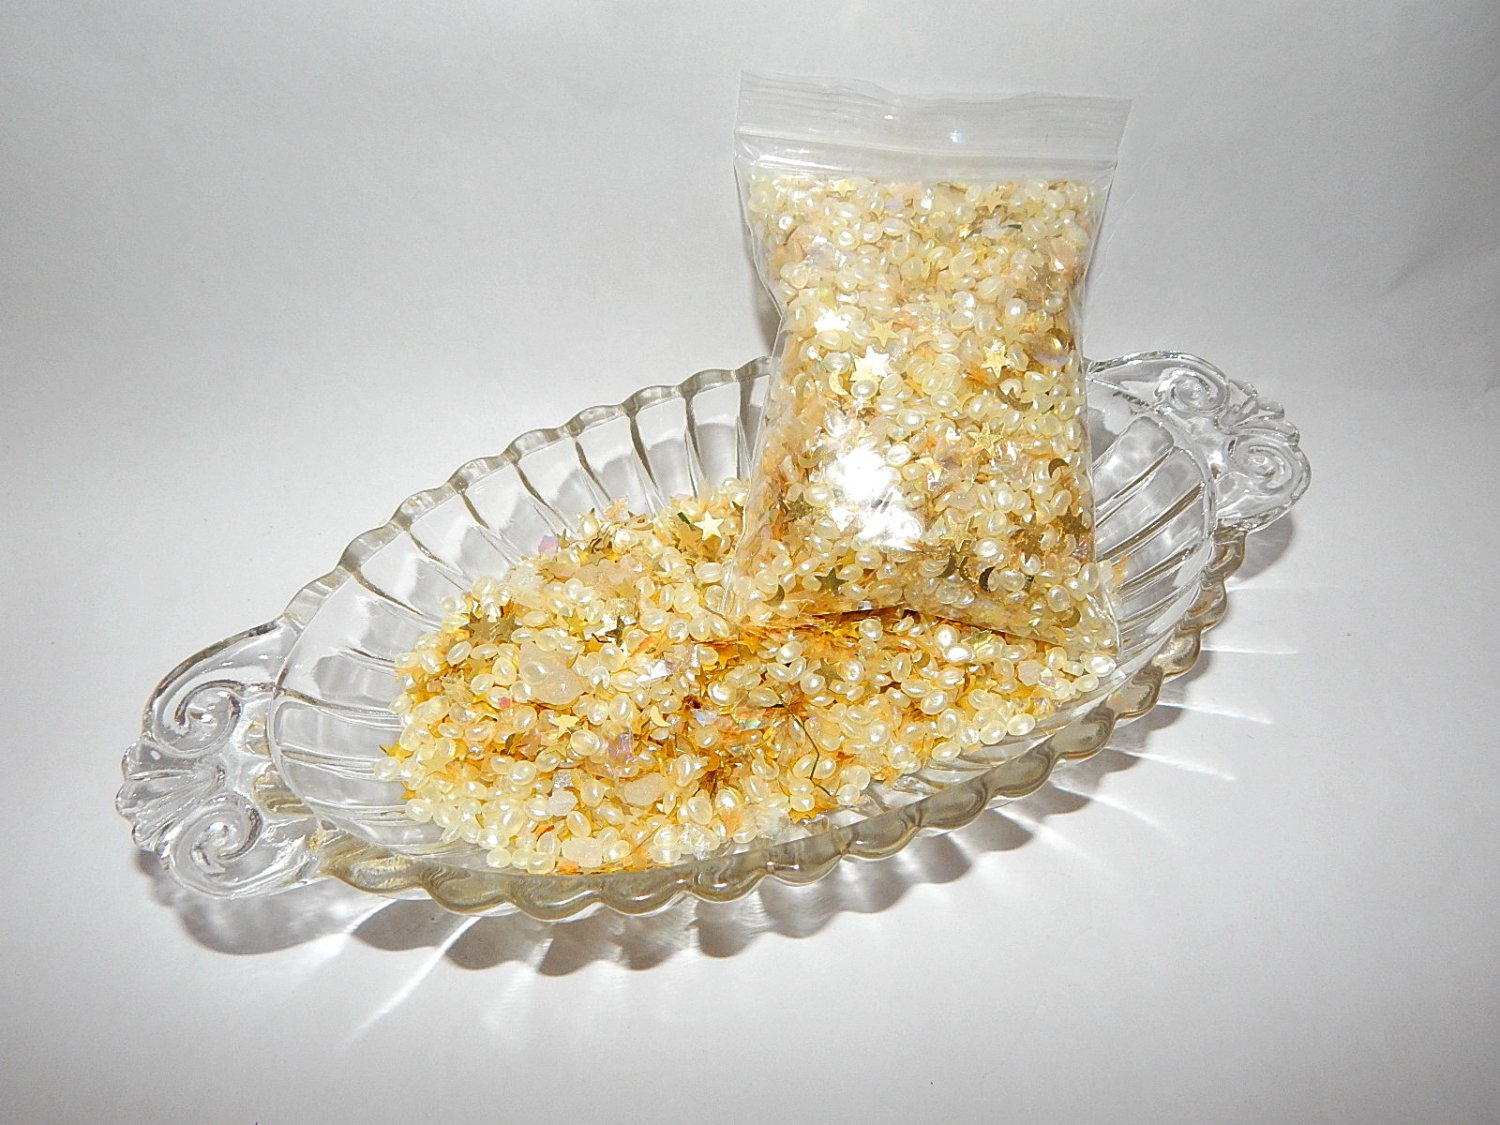 Cinnamon Potpourri Wax Bead Christmas Home Fragrance  2 Oz